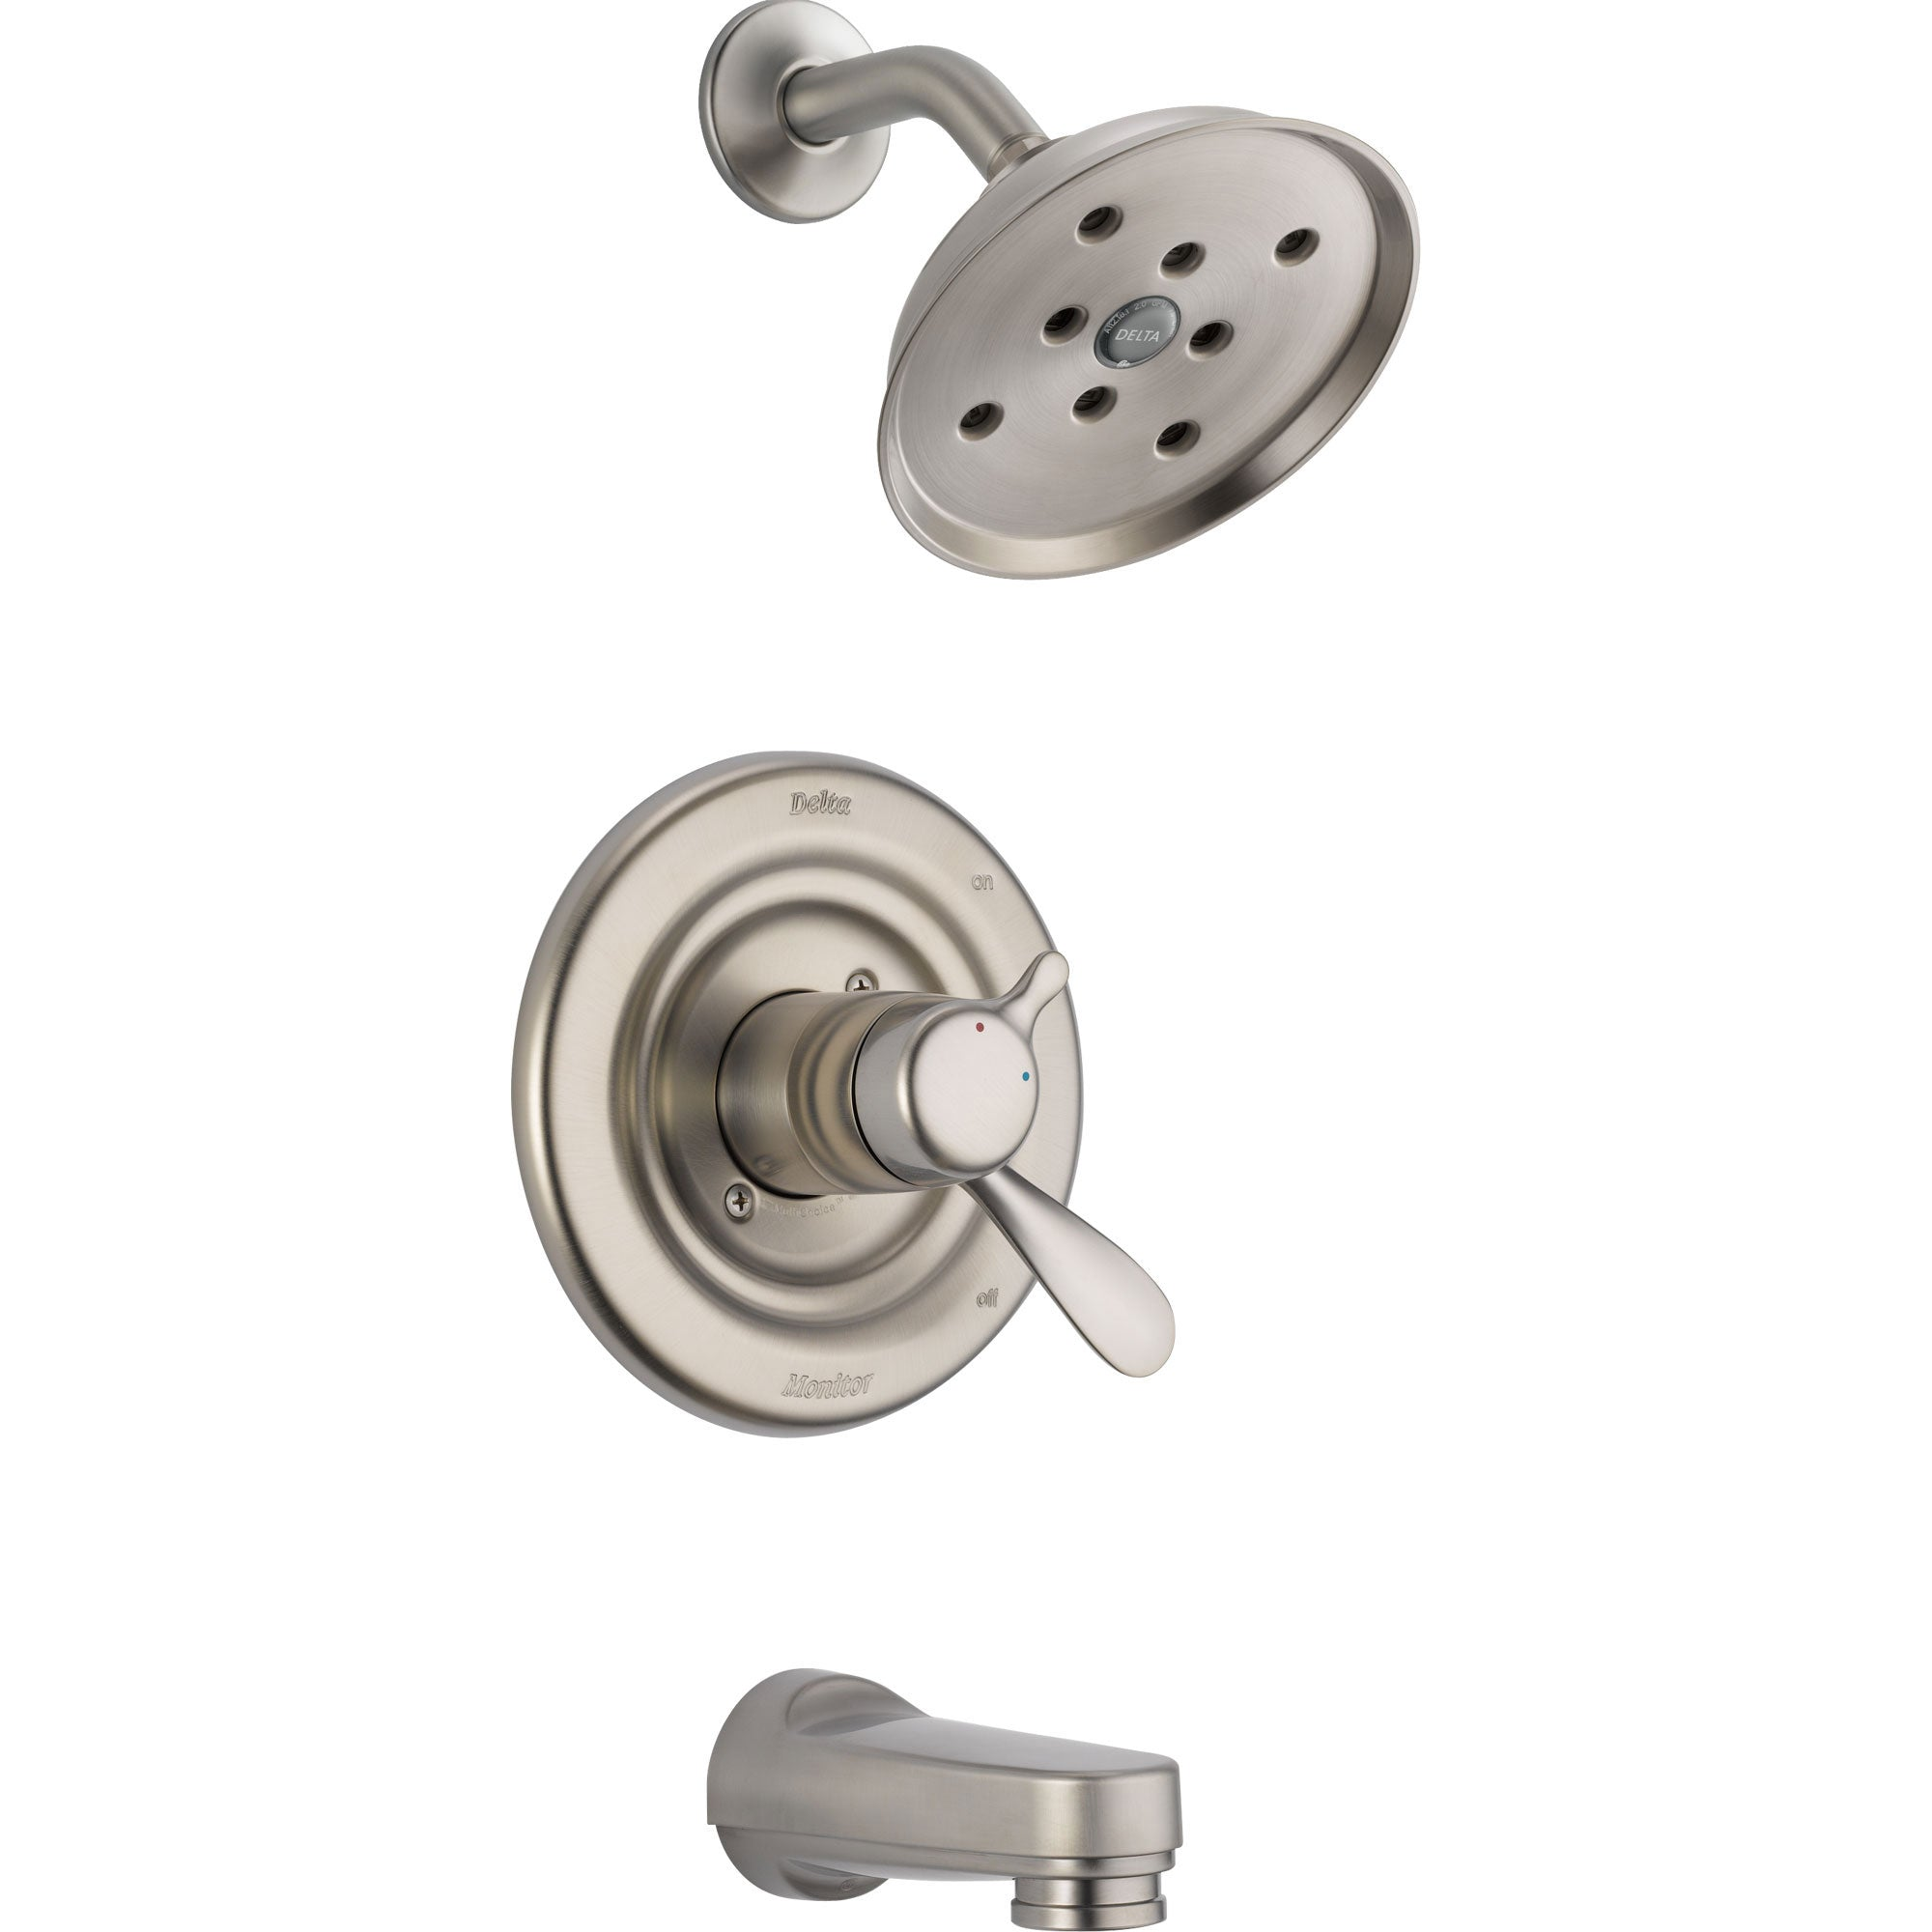 Delta Dual Control Temp/Volume Tub & Shower with Valve in Stainless Steel D363V